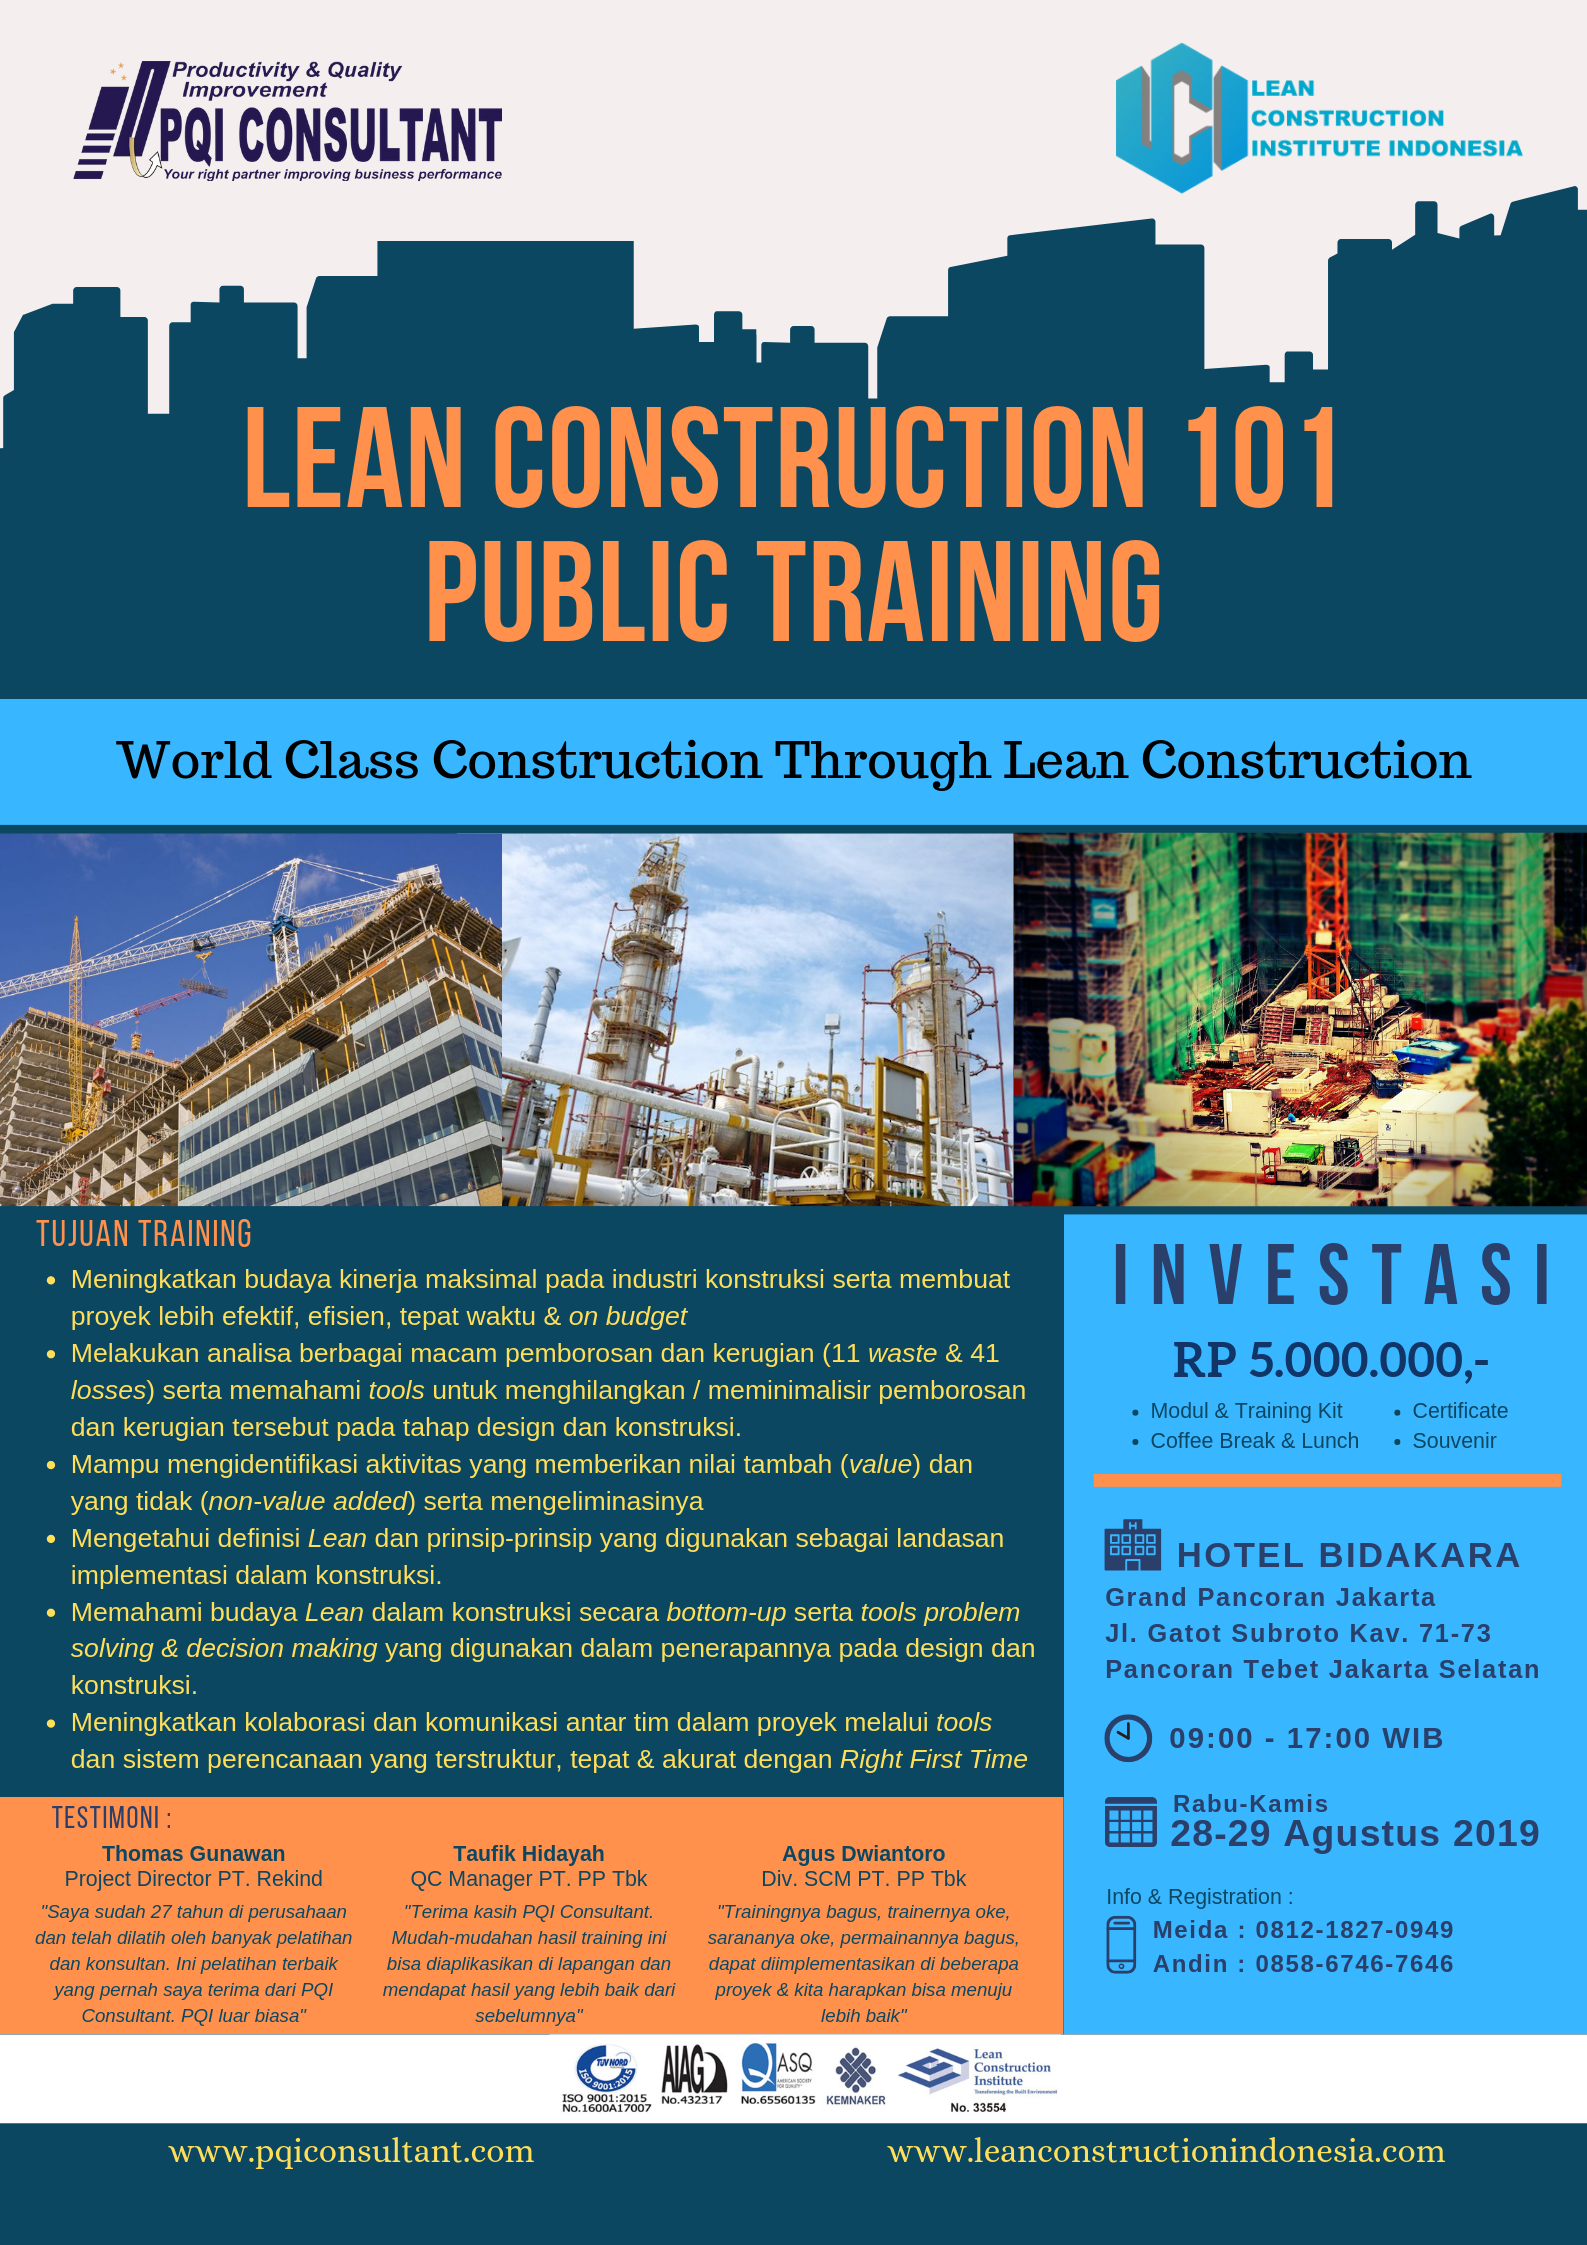 Lean Construction Indonesia Public Training